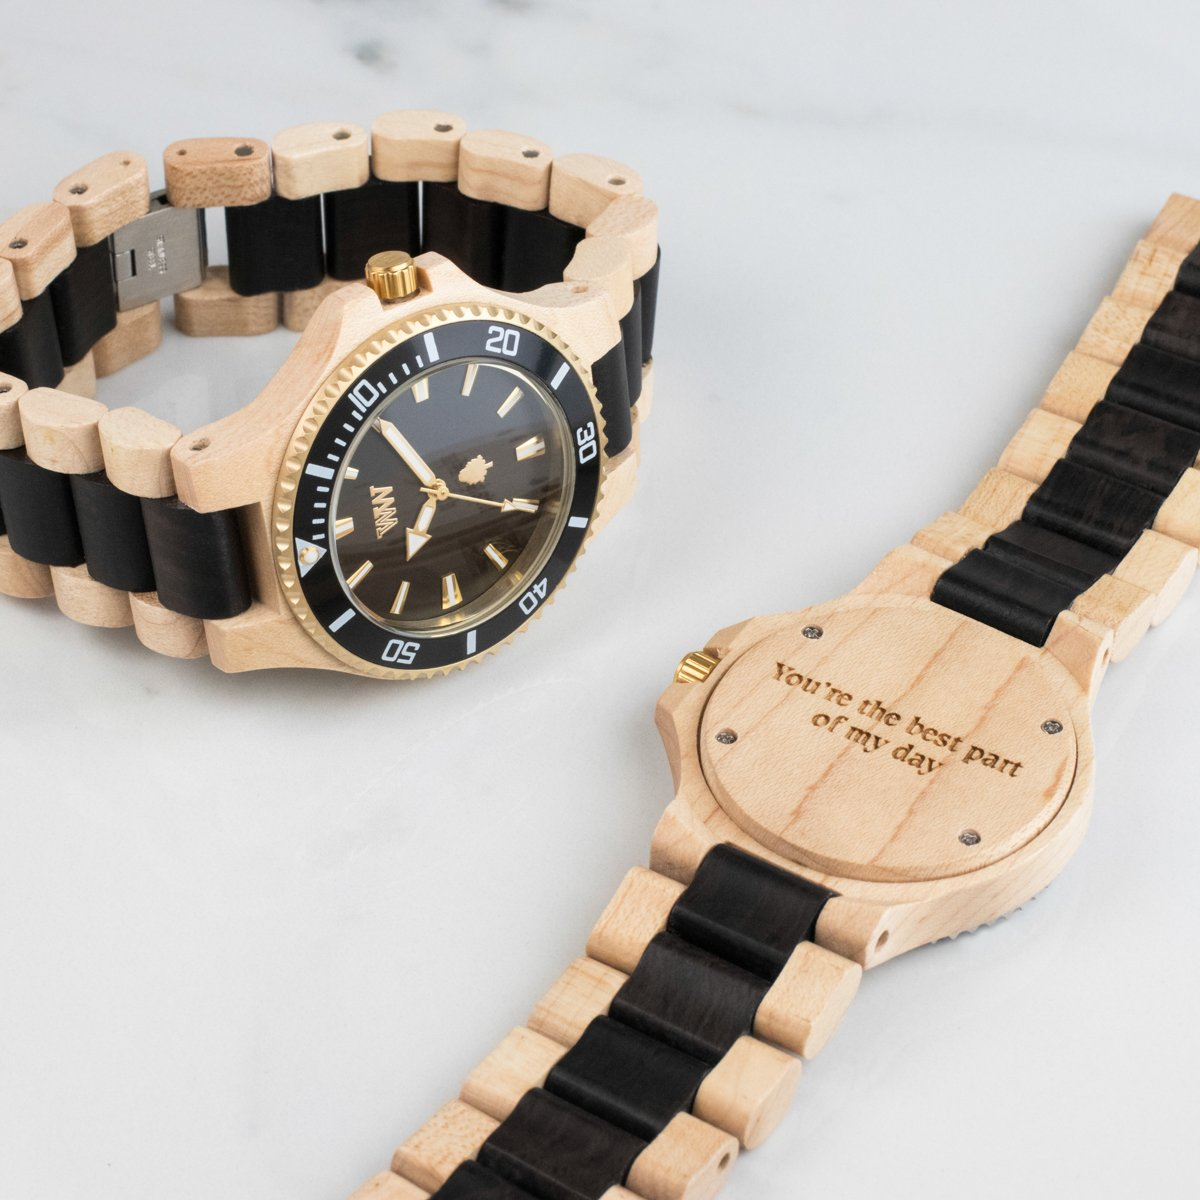 they get best watches wood really will woodwatches plantwear at give nature strive as watch only true cool a also not watchbandit something to back looking designed ecological be you